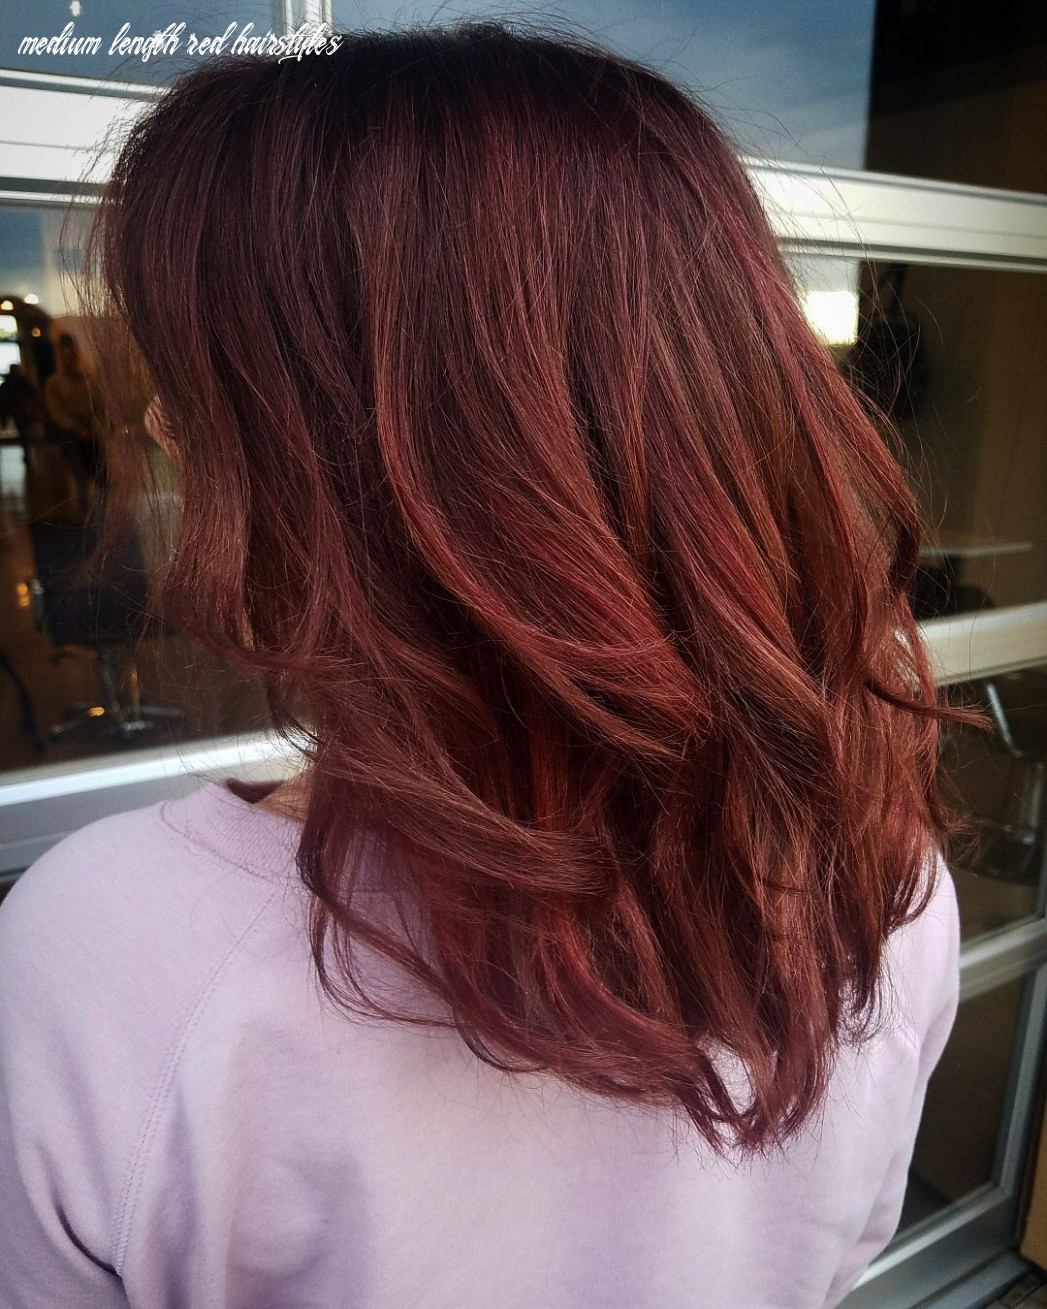 10 stunning red hairstyles for women page 10 of 10   medium